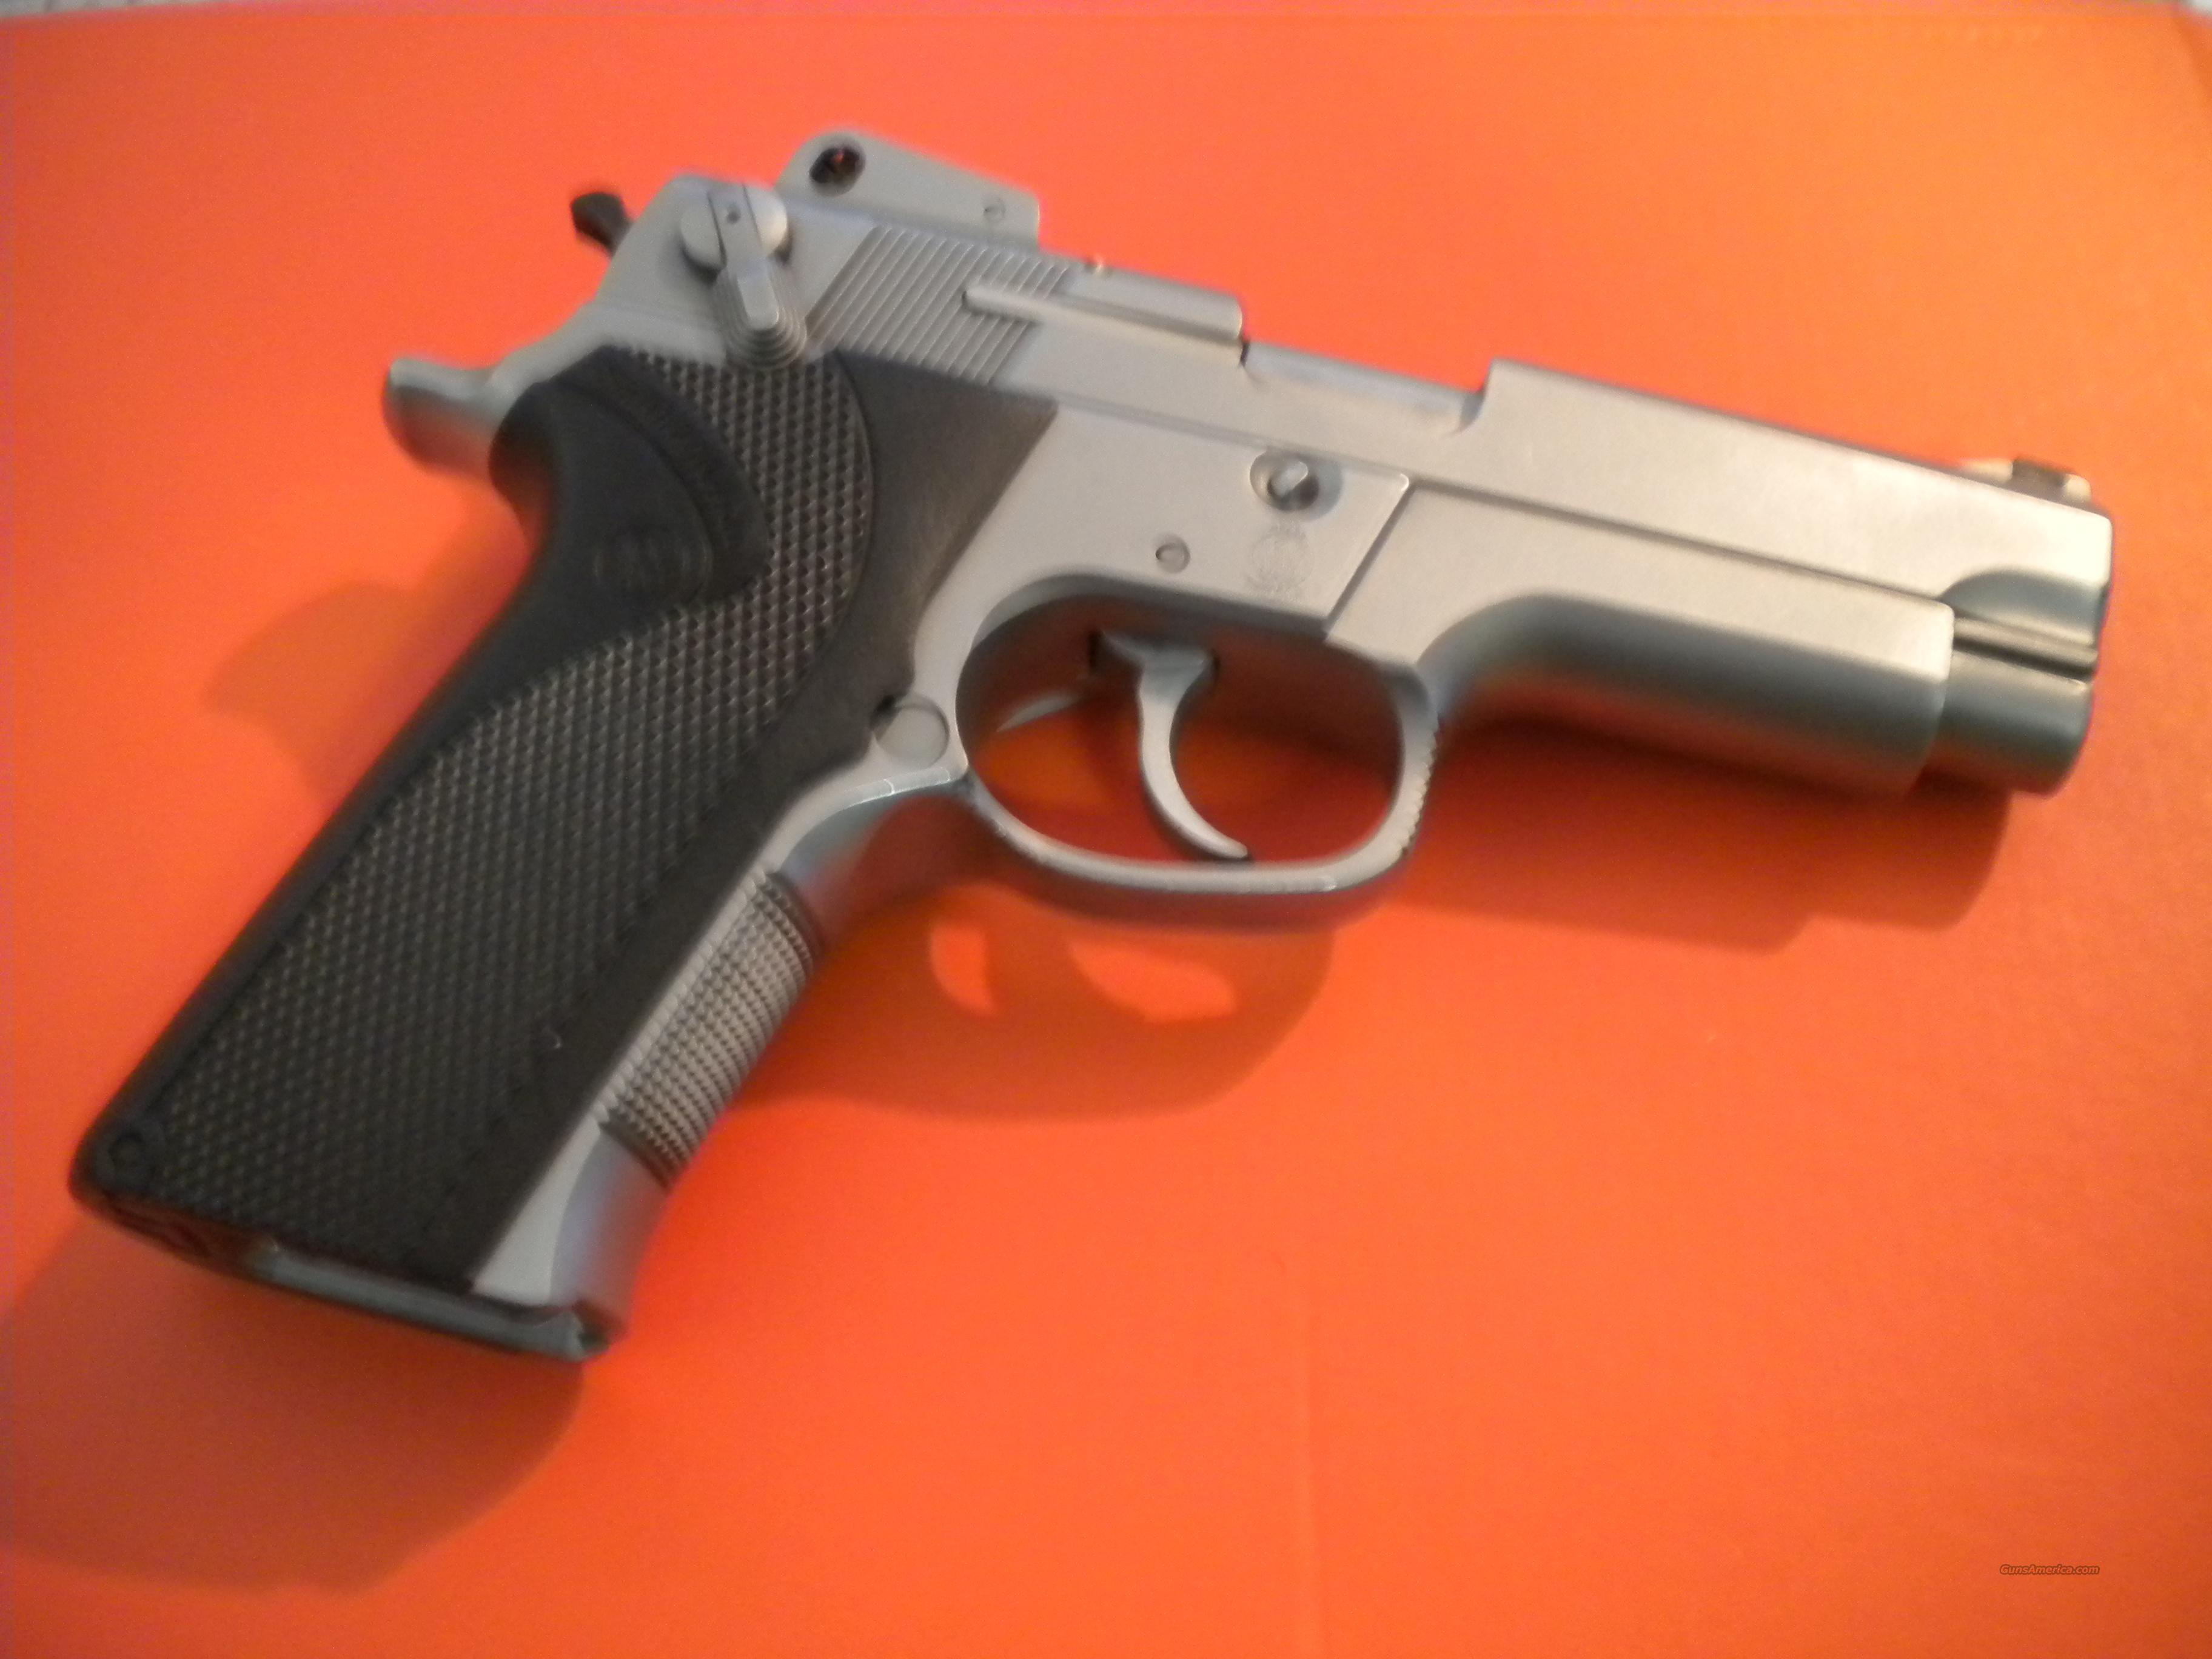 Smith & Wesson Stainless 40 cal. Semi Auto Pistol  Guns > Pistols > Smith & Wesson Pistols - Autos > Alloy Frame